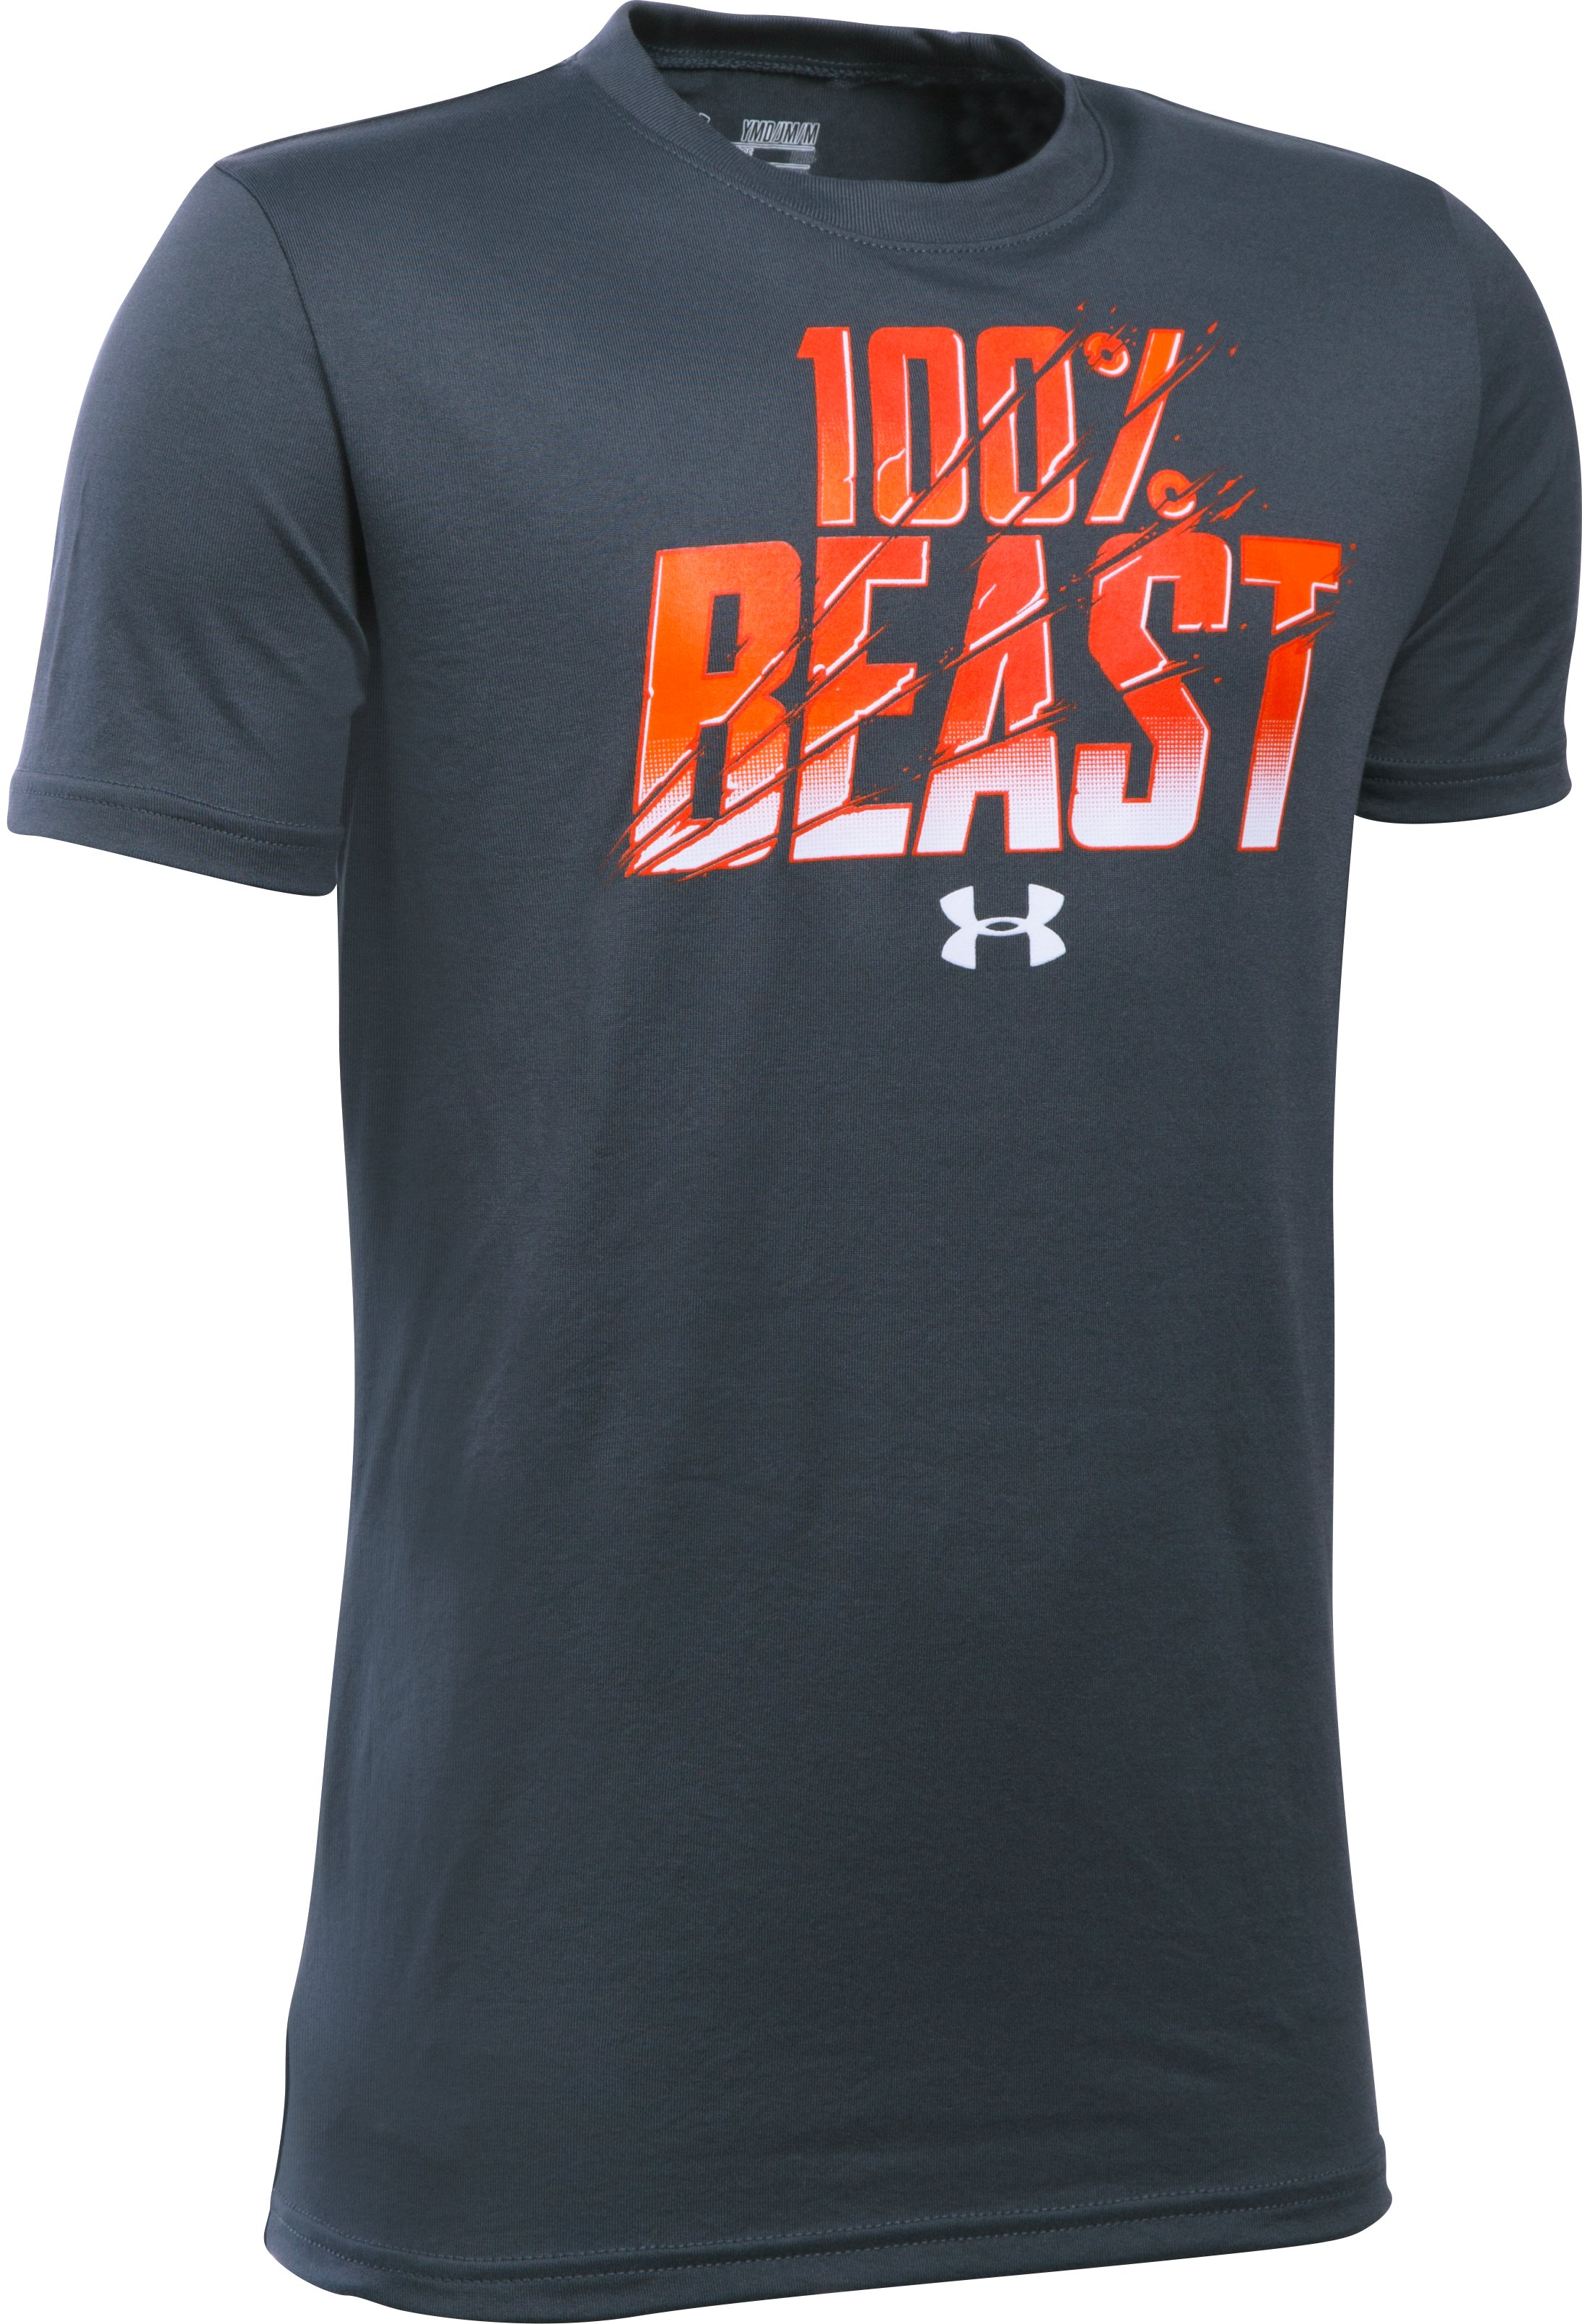 Boys' UA Unleash The Beast T-Shirt, STEALTH GRAY, undefined